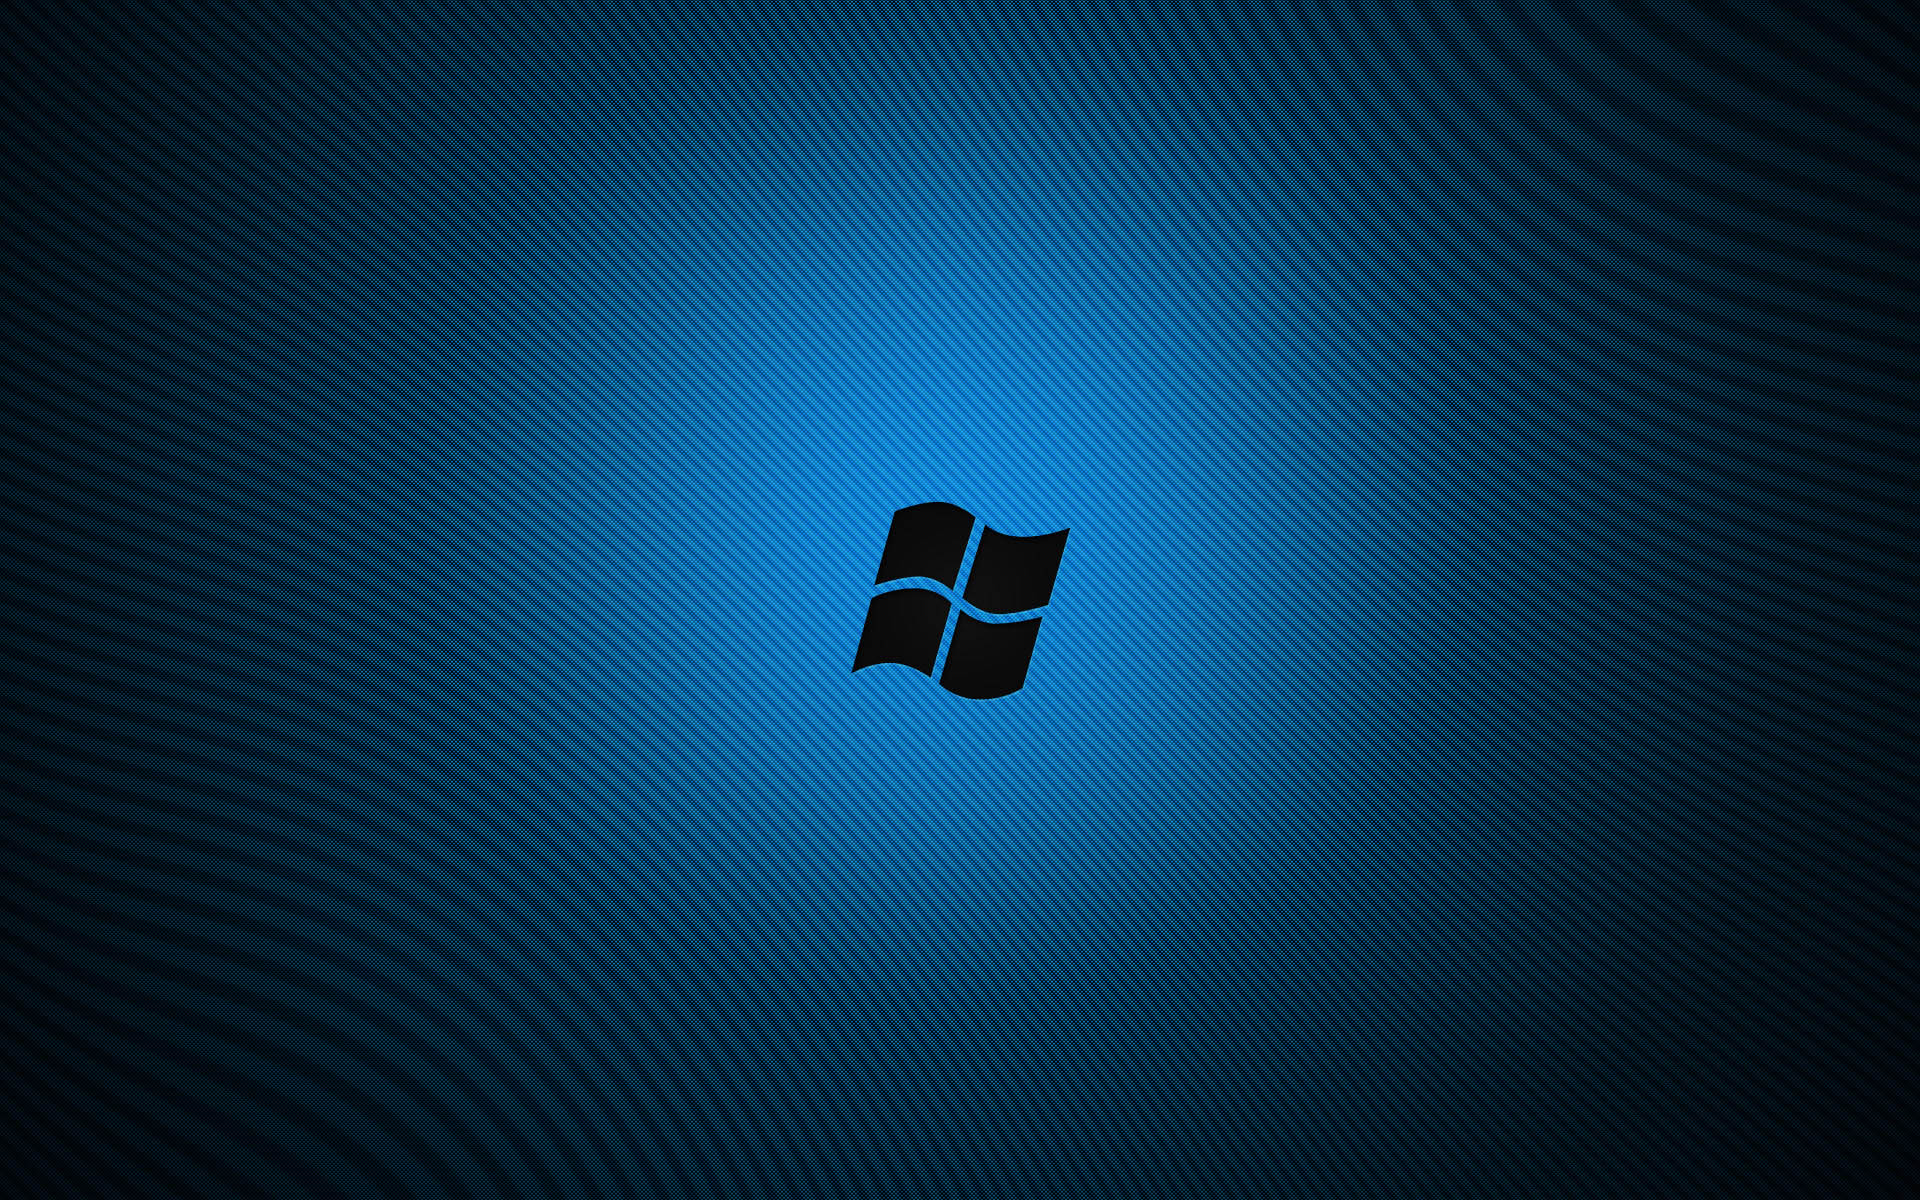 Hd wallpaper windows 7 - Windows 7 3d Hd Wallpapers Widescreen Desktop Backgrounds